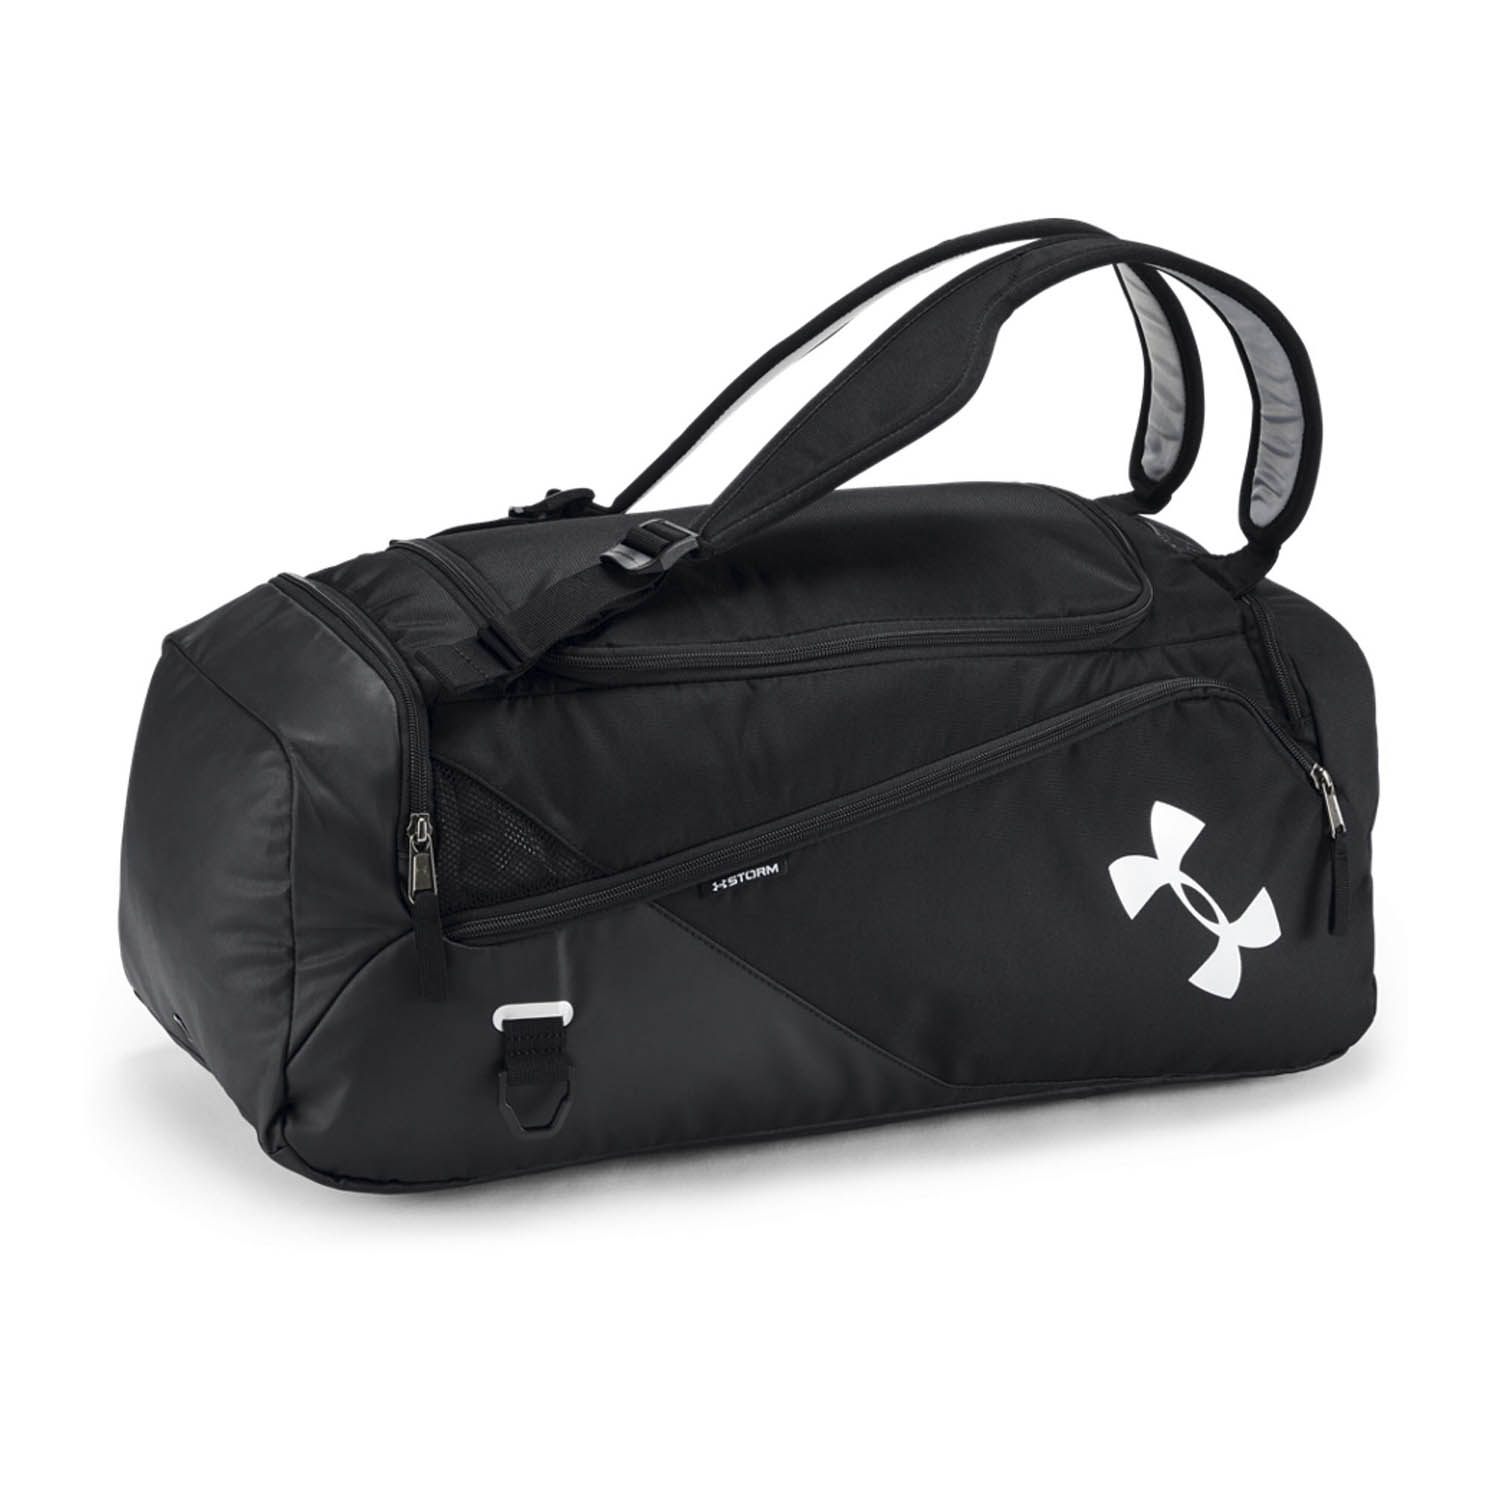 Under Armour Contain Duo 2.0 Duffle - Black/Silver